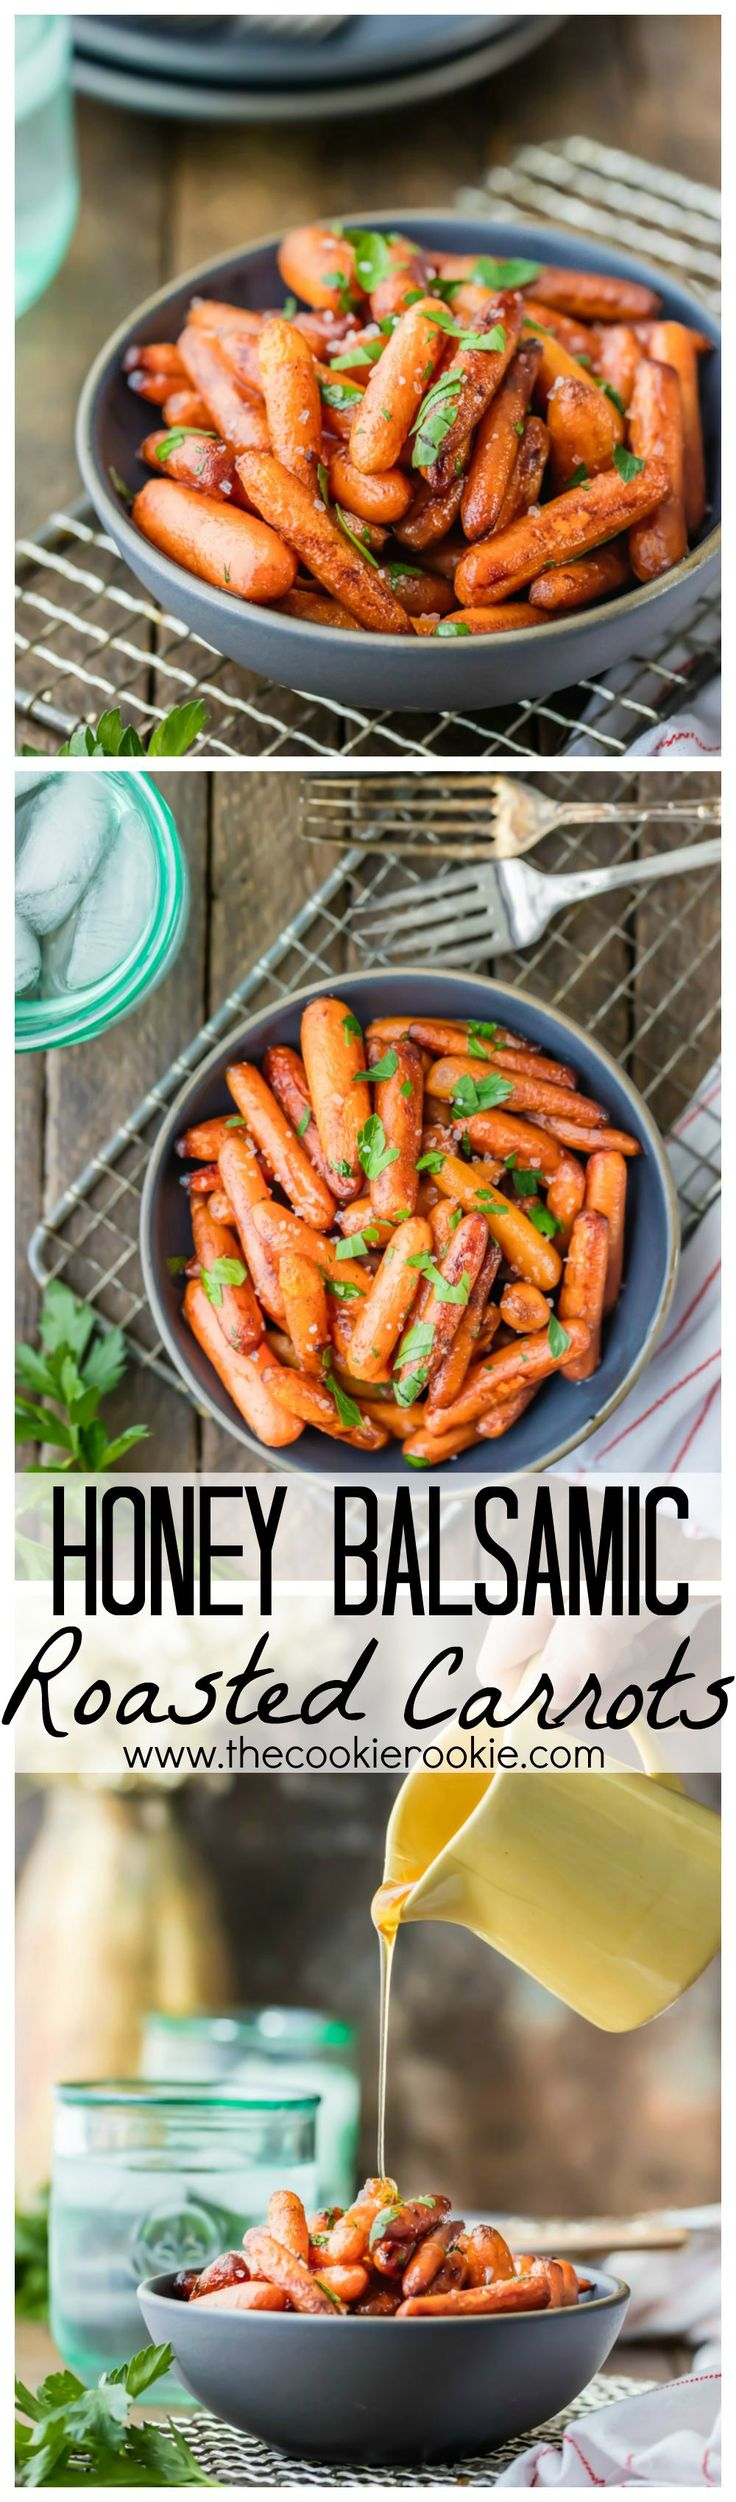 Honey Balsamic Roasted Carrots. You'll look like a chef but you'll secretly know this is the EASIEST side dish EVER! Since Pat and I built our house, we have hosted Thanksgiving. My parents live out o